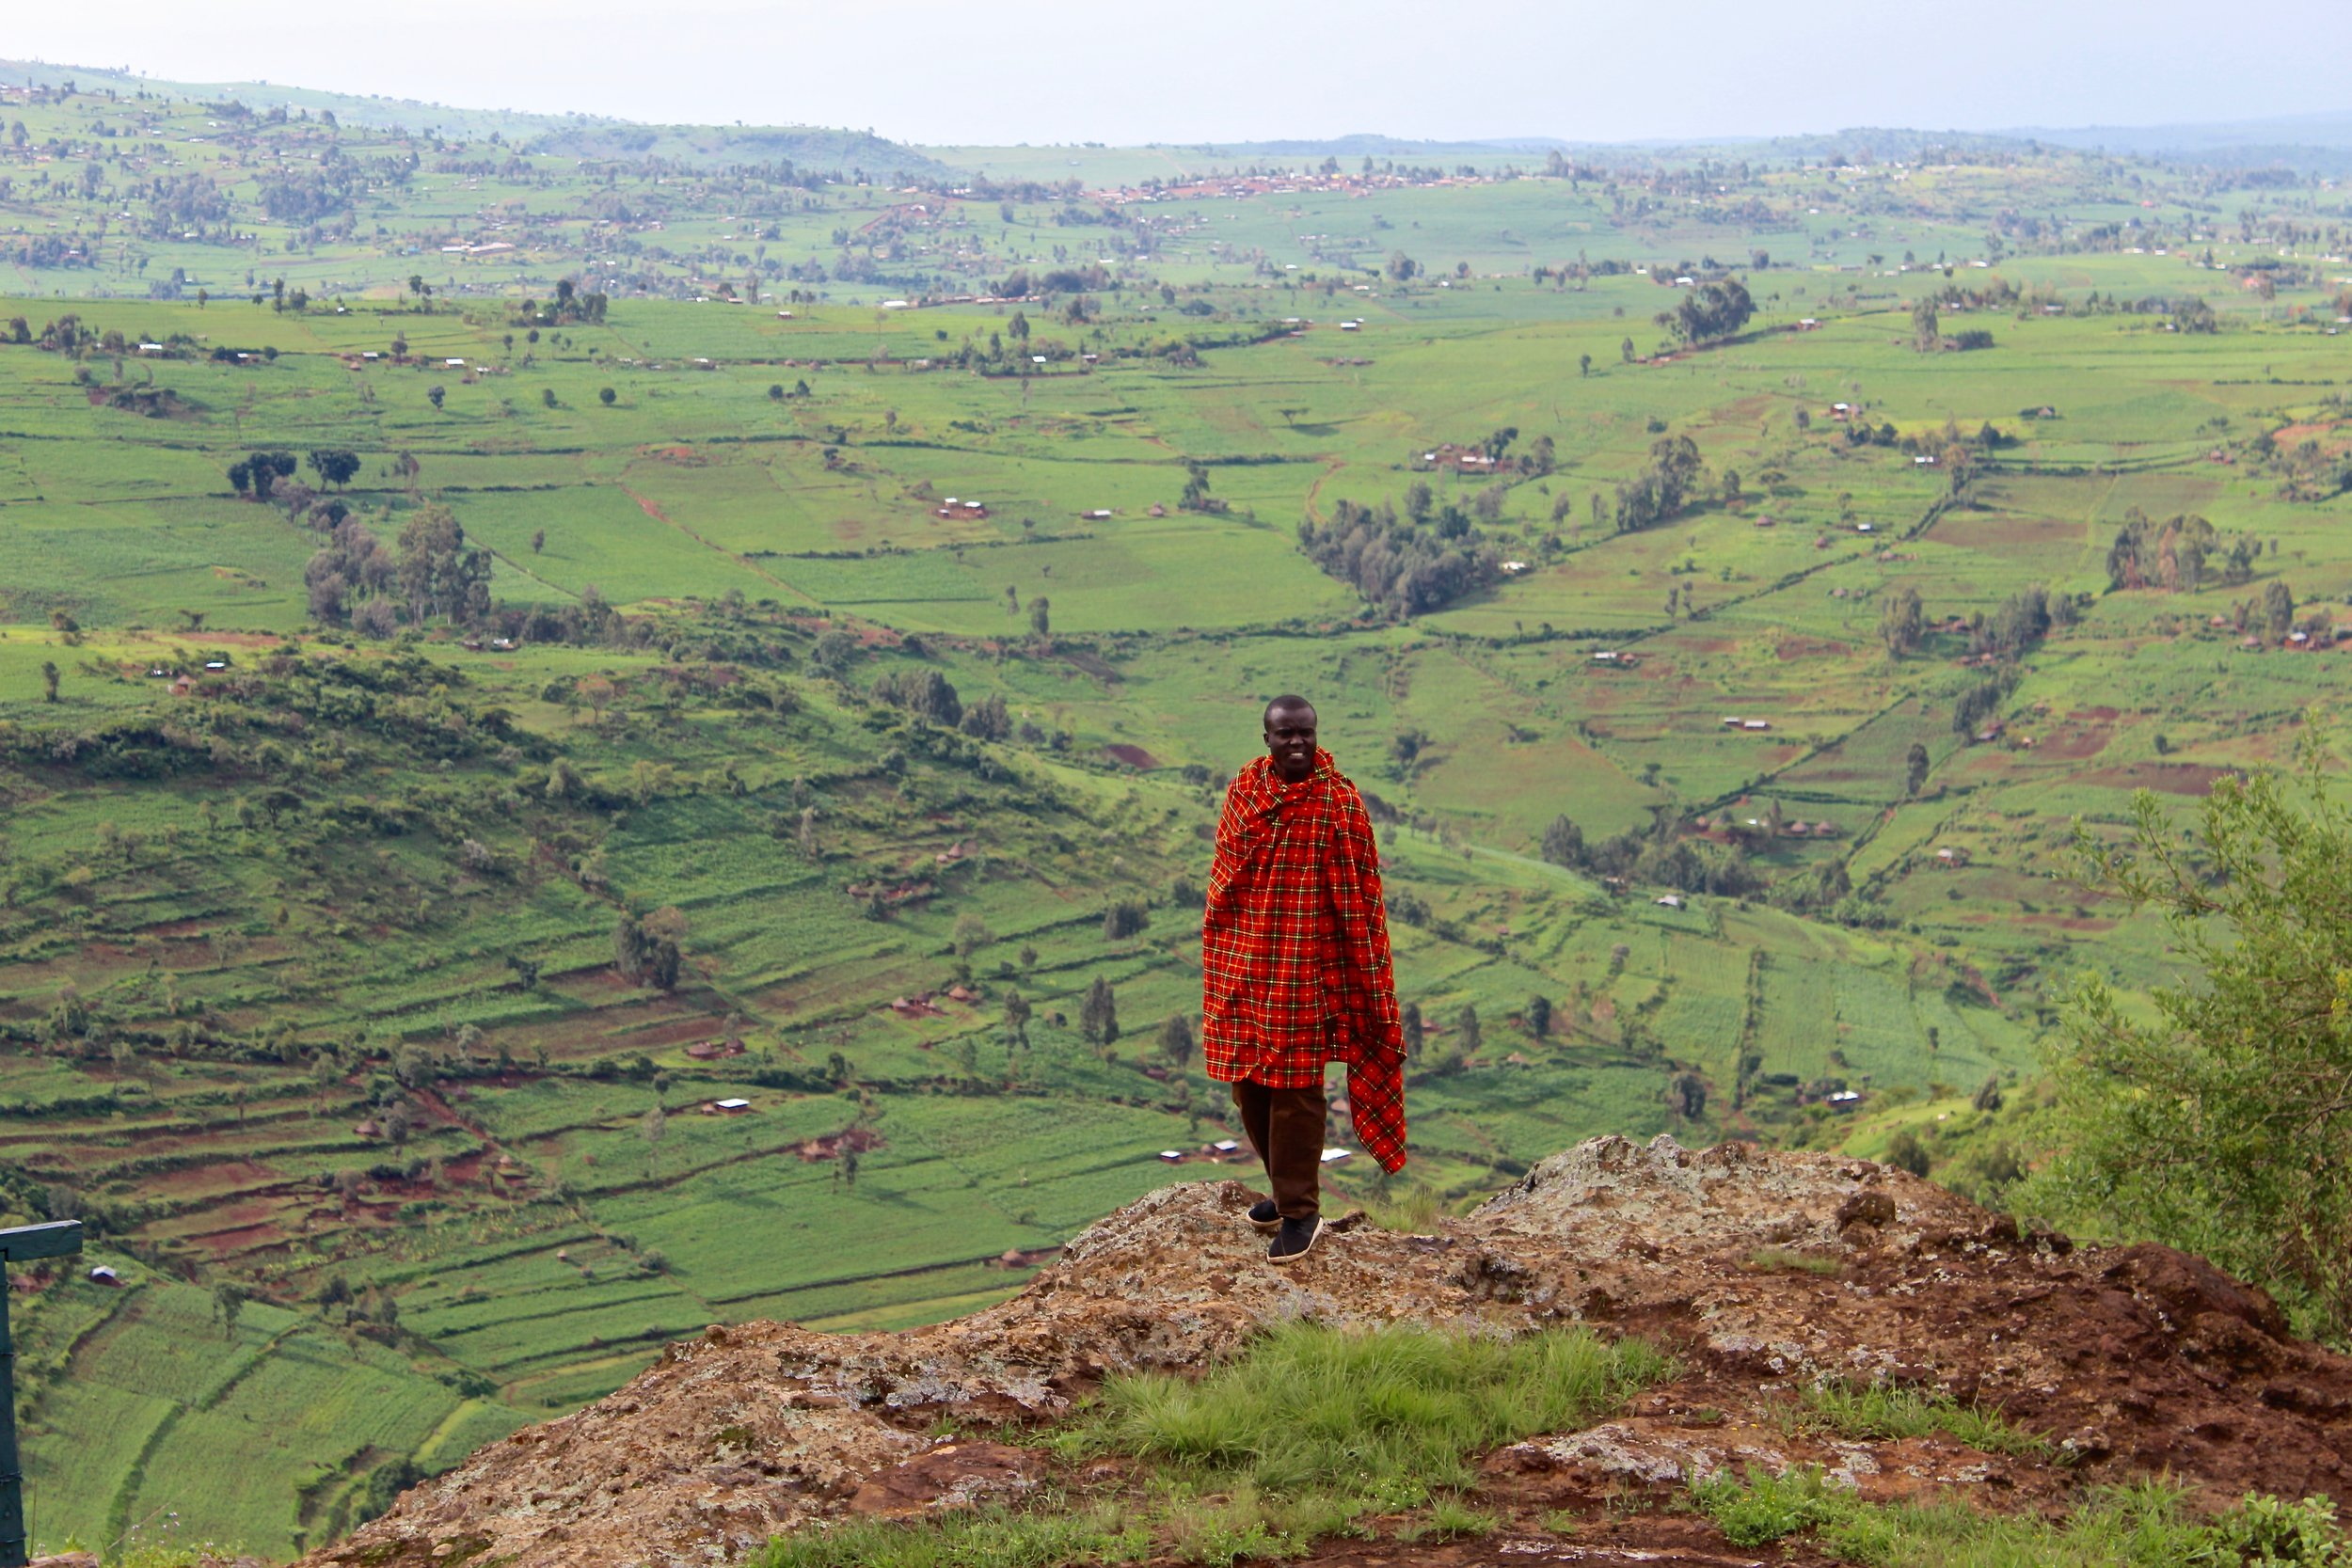 This was our favorite overlook at Mt. Elgon. Livingstone is posed with the Kenyan countryside in the background. If you look closely, you can see fields and houses.